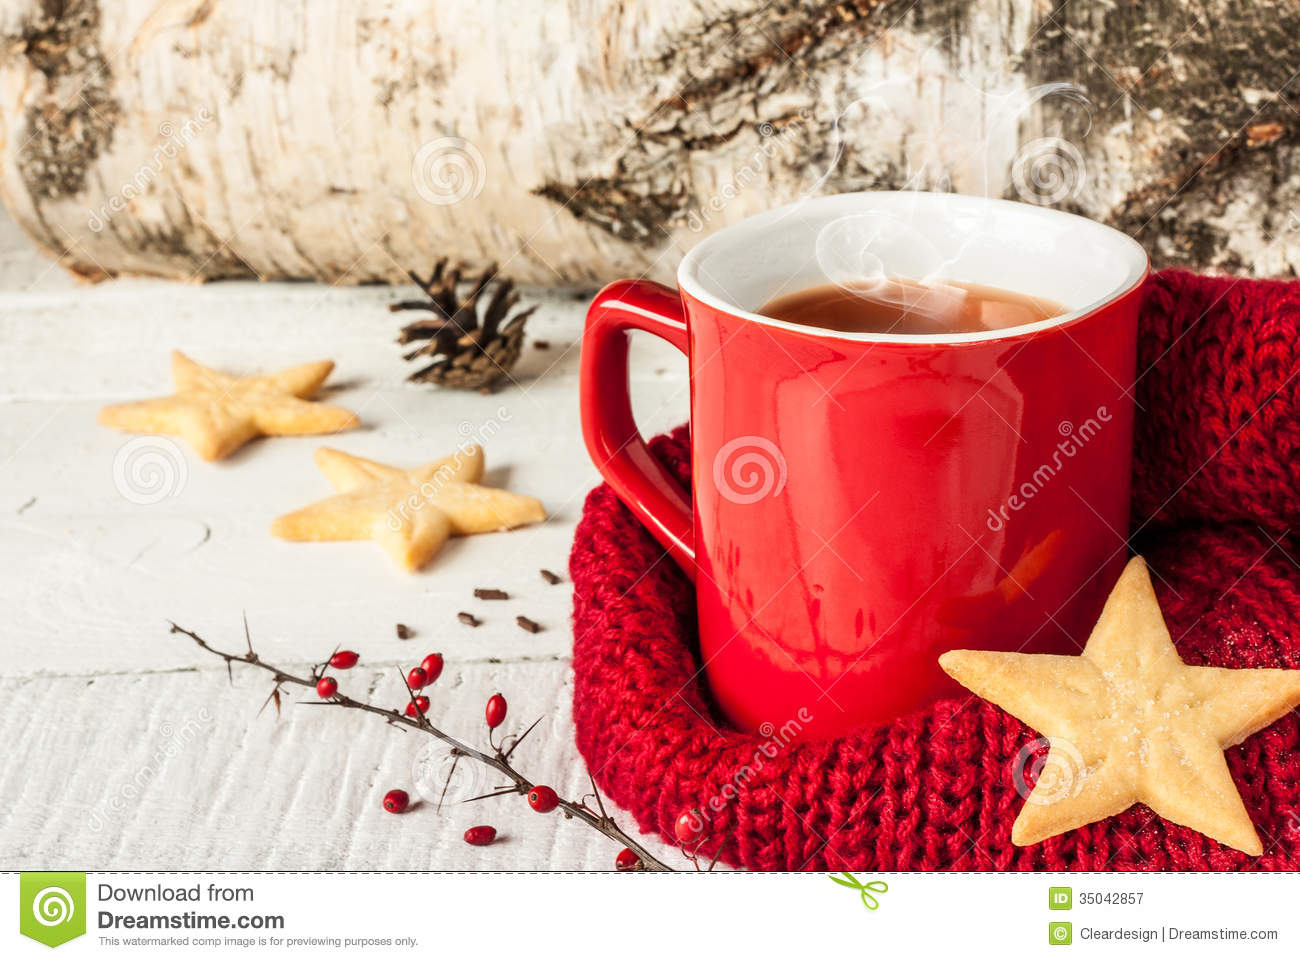 Hot Winter Tea In A Red Mug With Christmas Cookies Royalty Free Stock ...